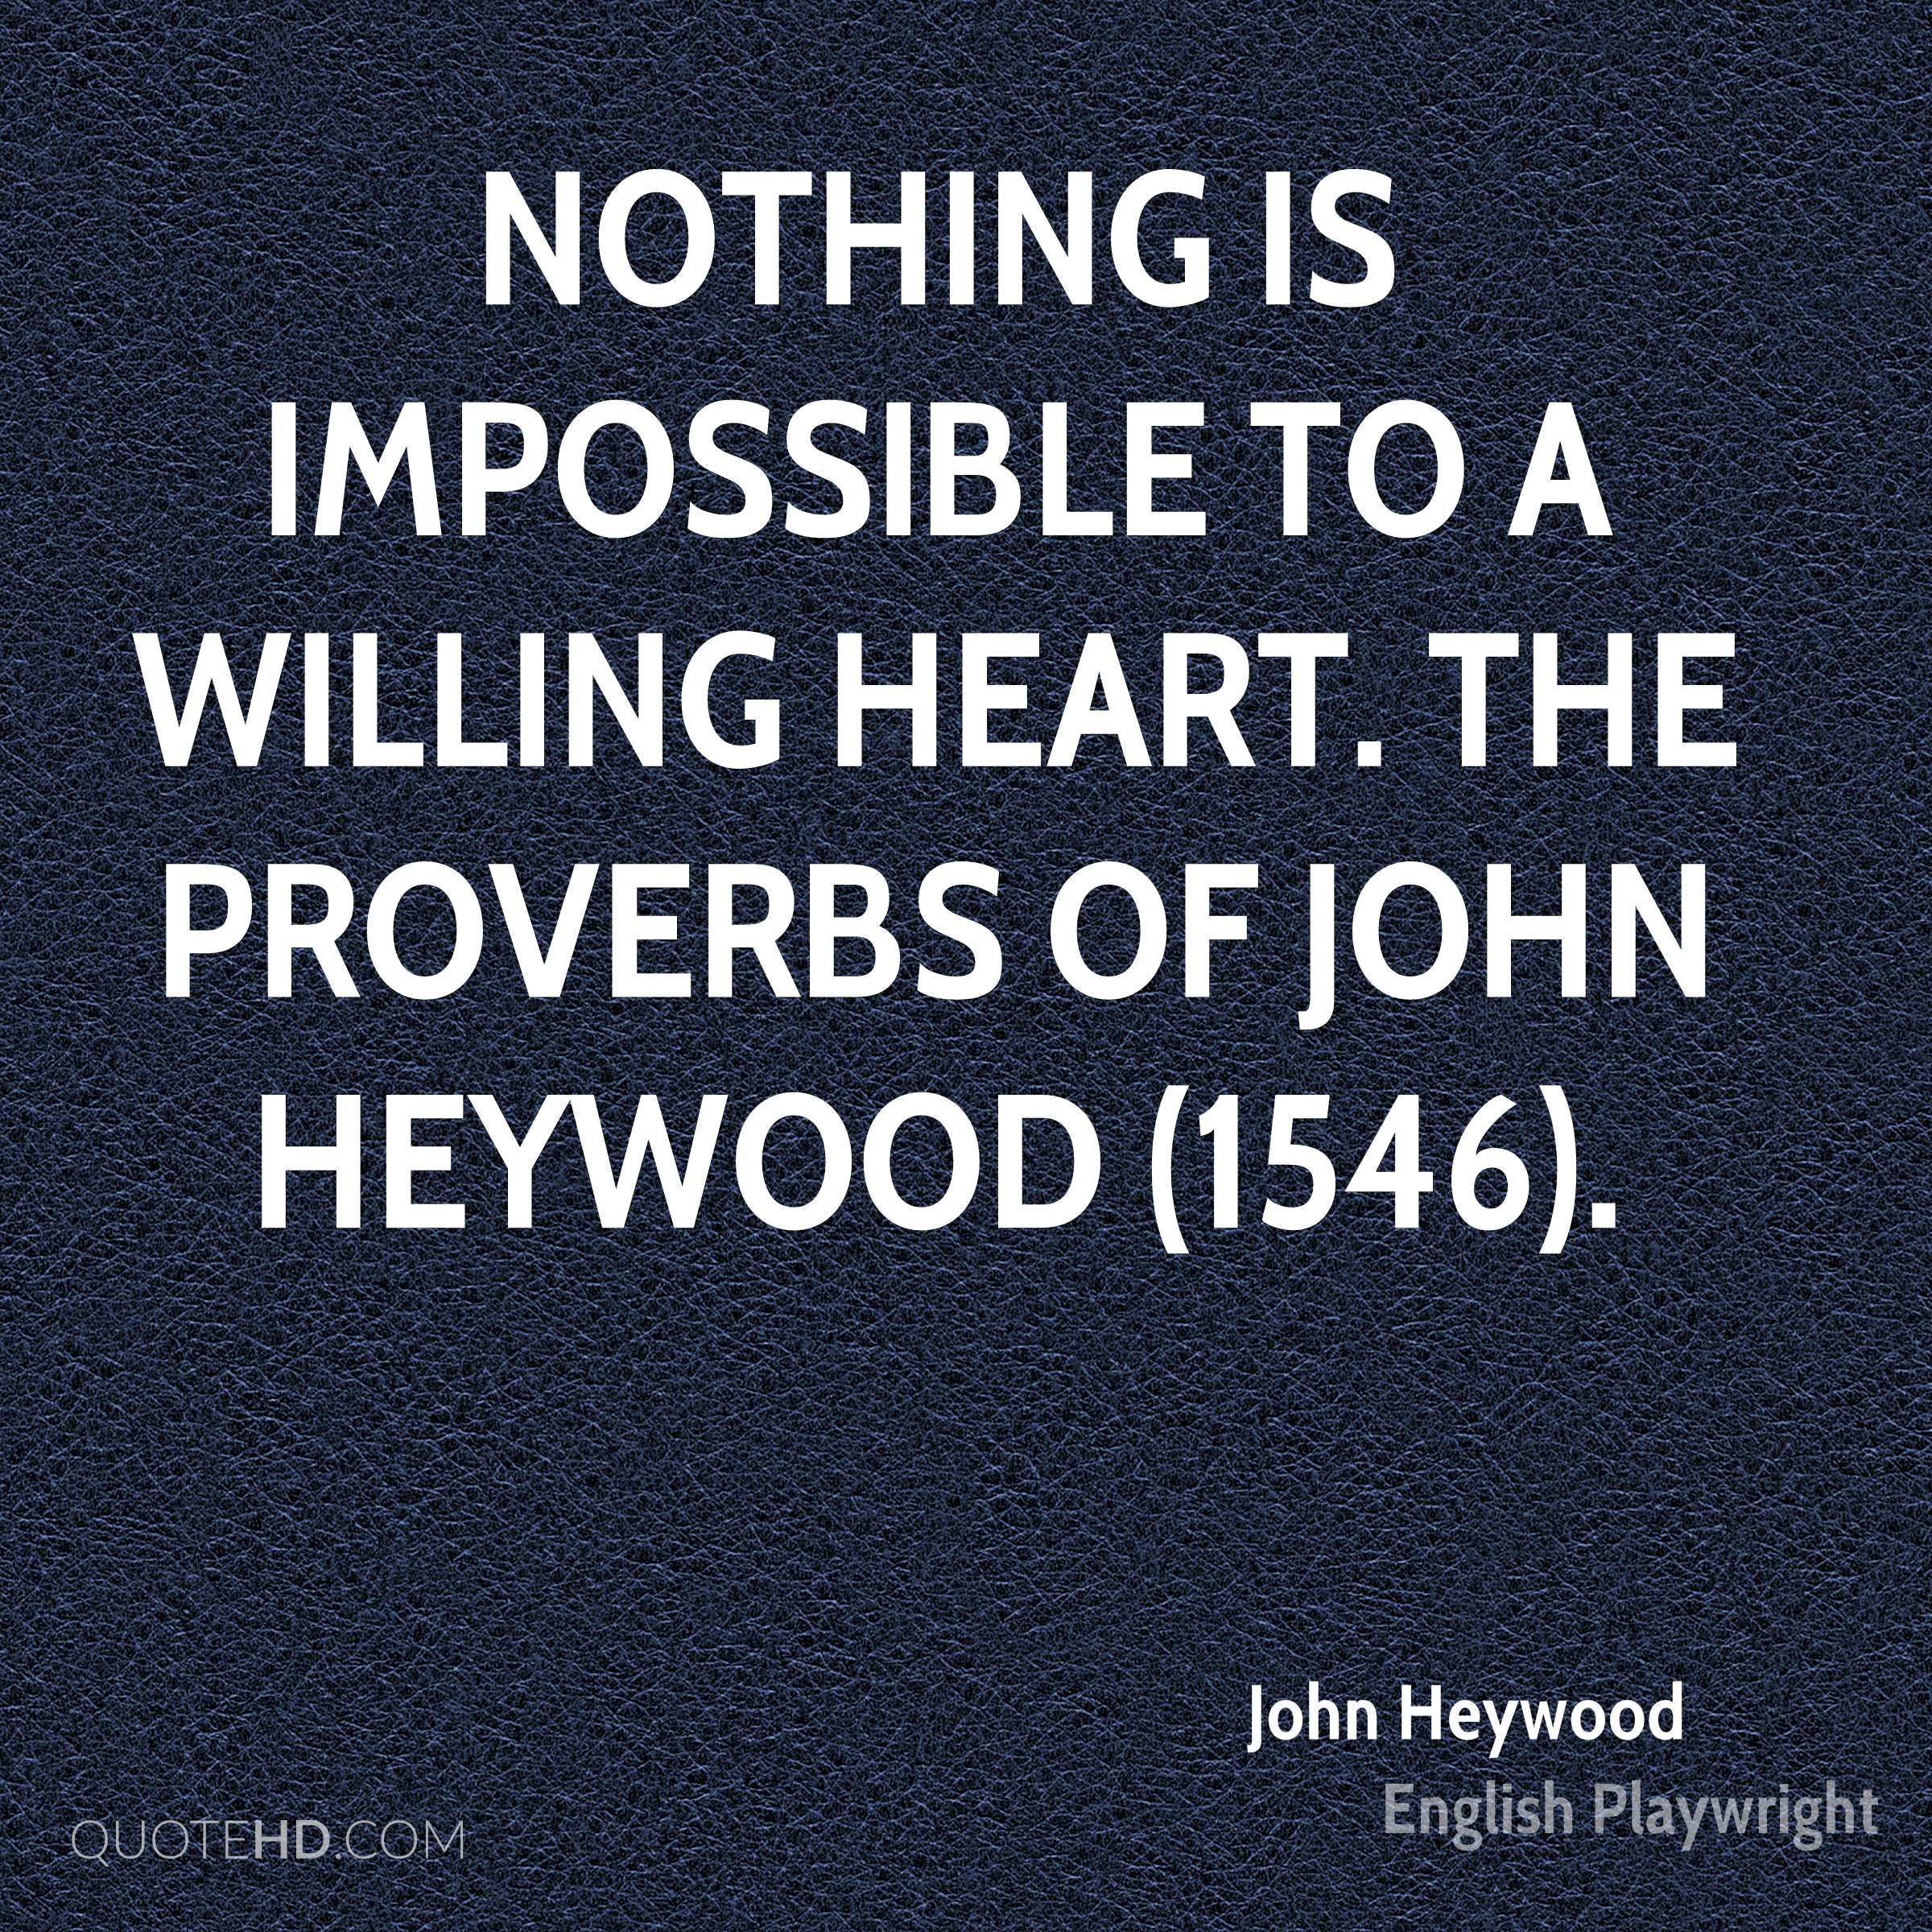 Nothing is impossible to a willing heart. The Proverbs of John Heywood (1546).